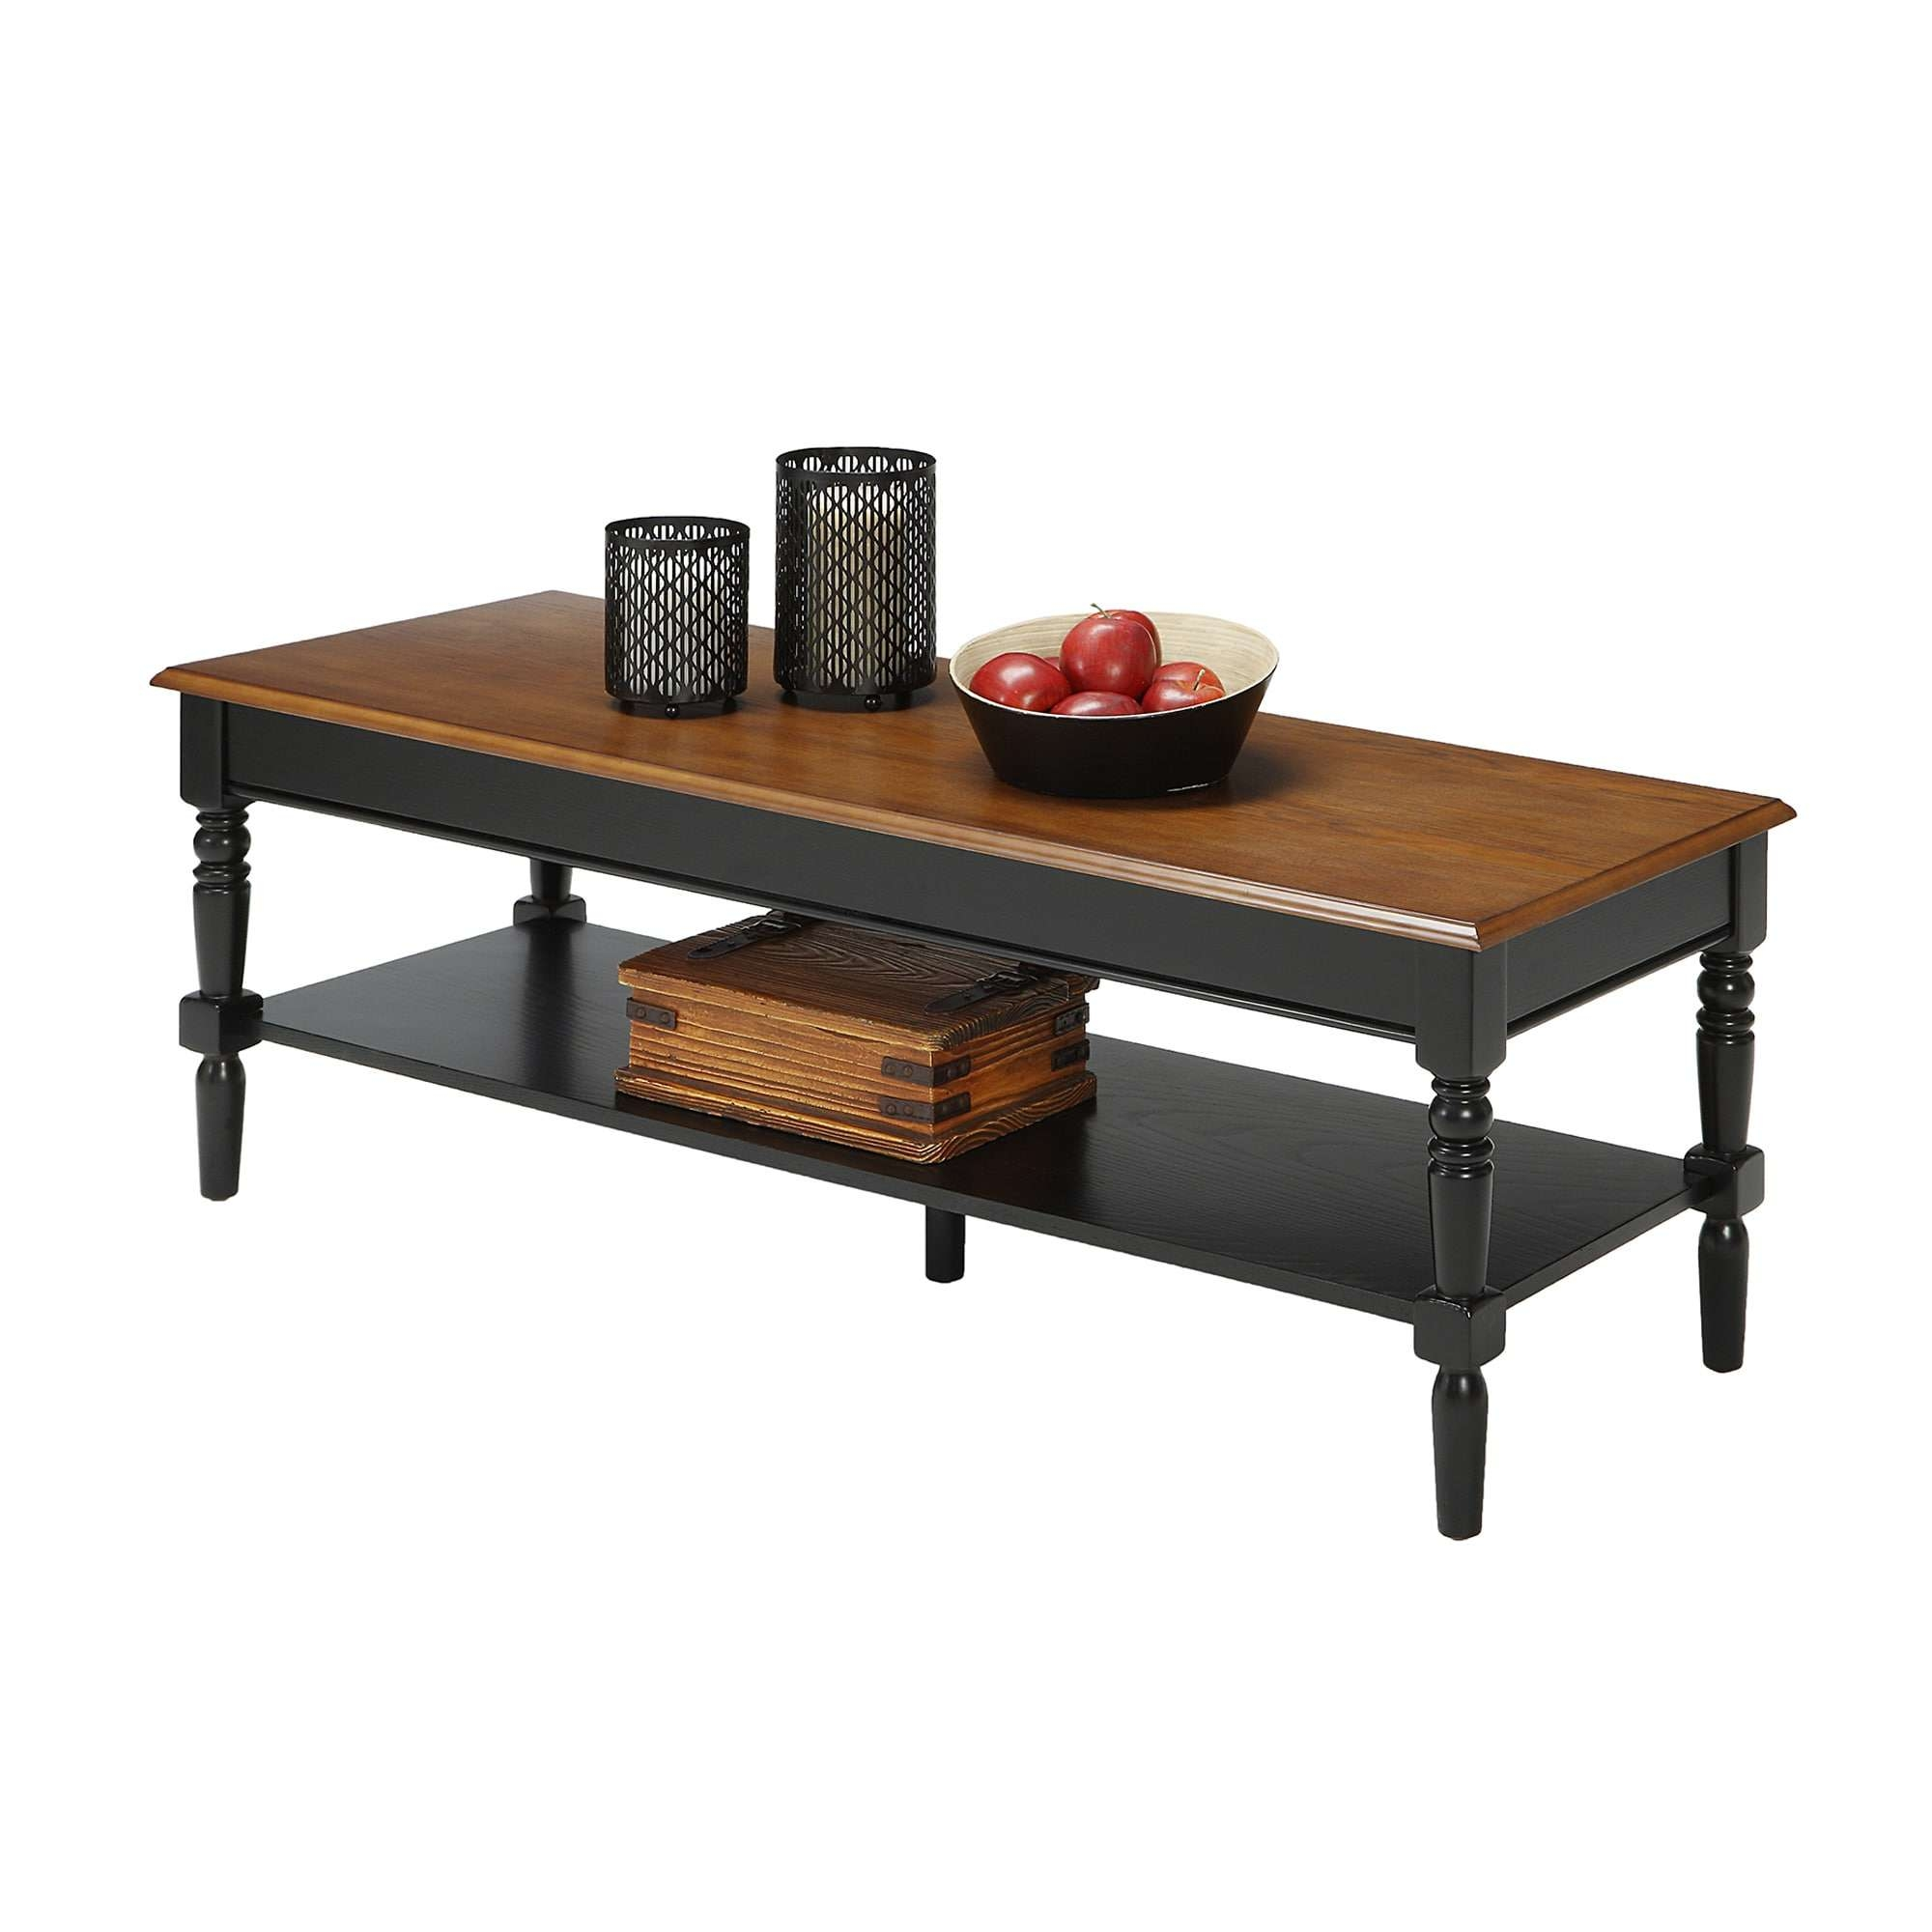 Convenience Concepts French Country Coffee Table – Free Shipping Within Most Recent Country Coffee Tables (View 7 of 20)